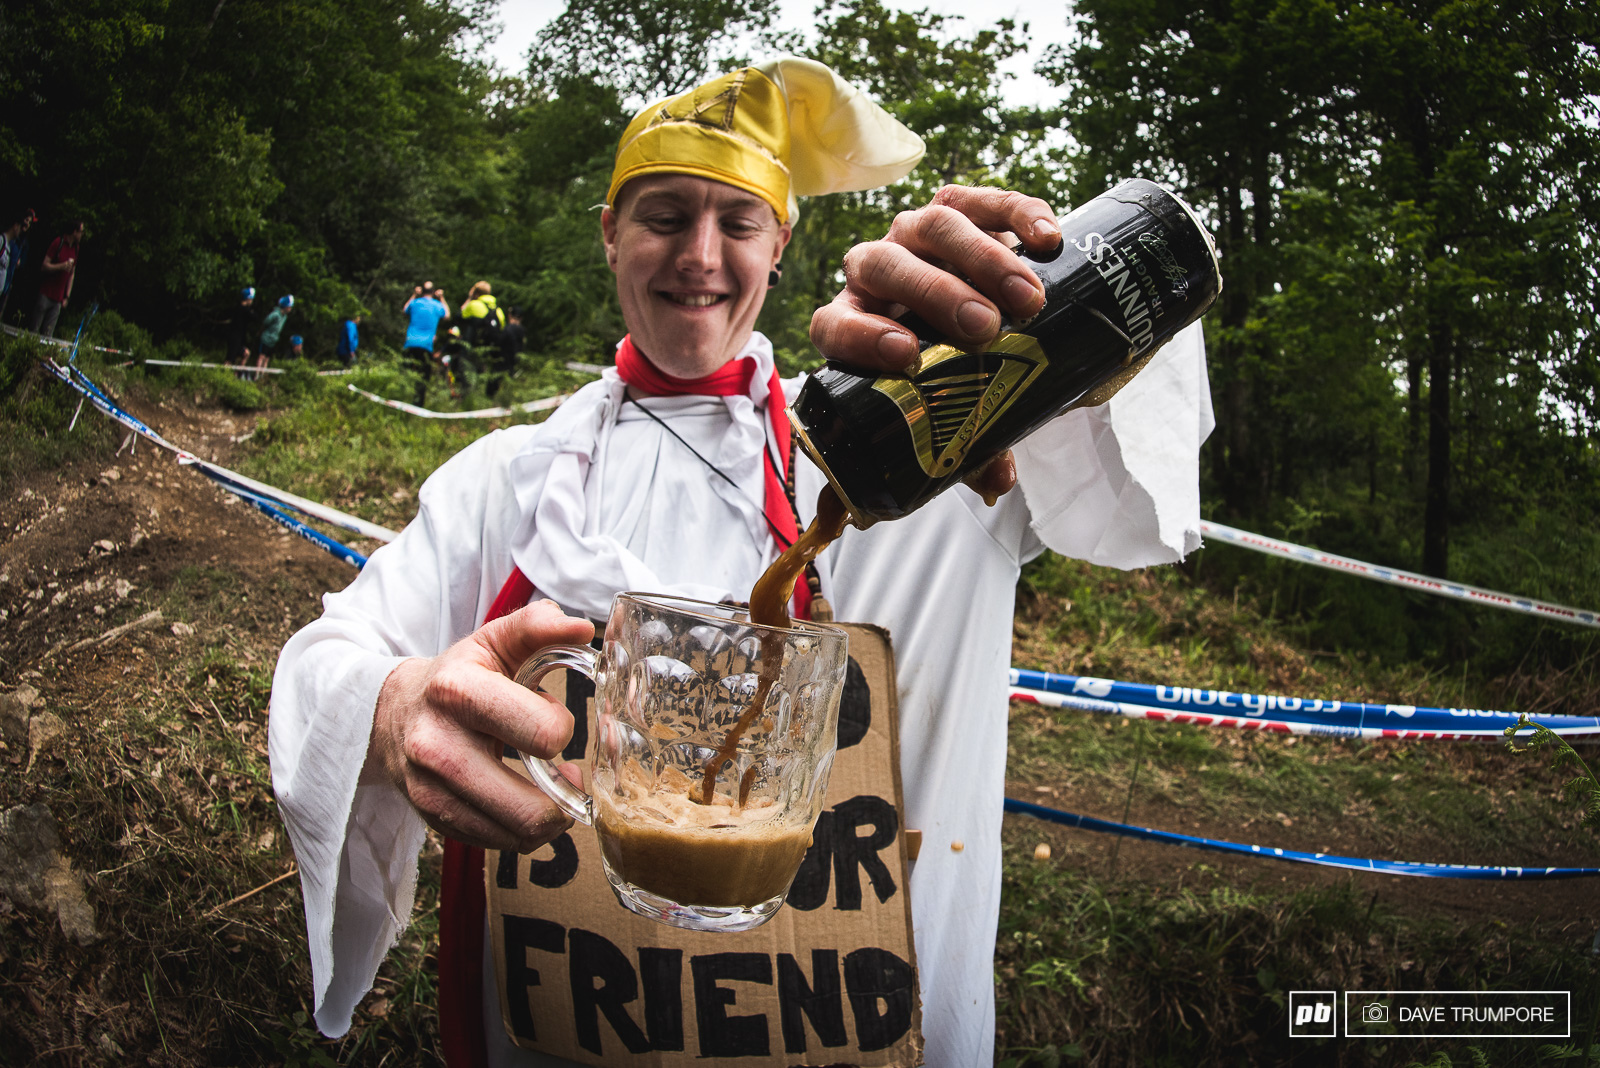 Mid-track Guinness poured by the Pope Who could say no to that.